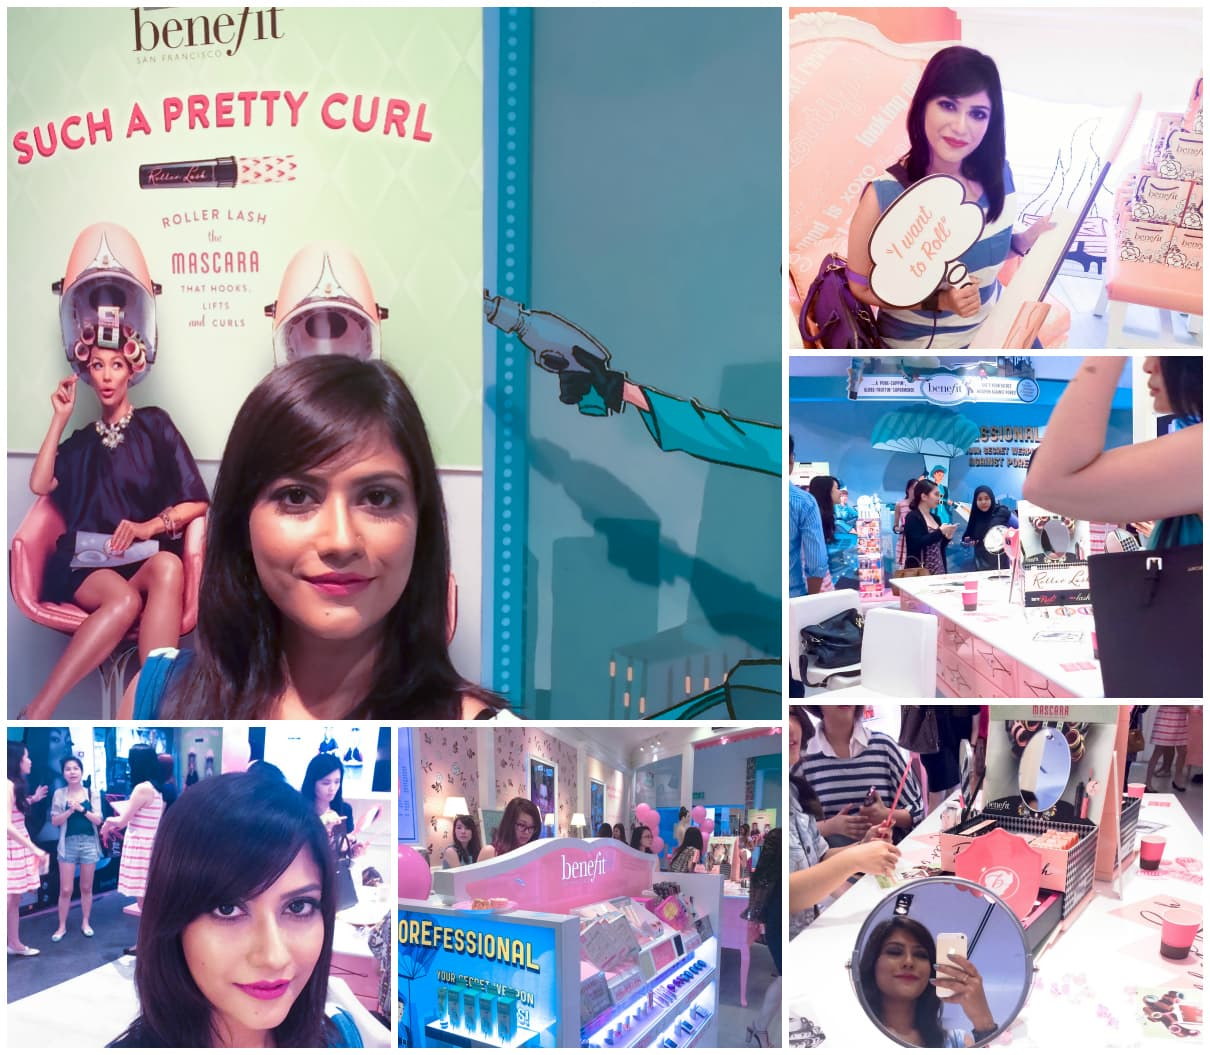 Benefit Rollar Lash mascara launch party